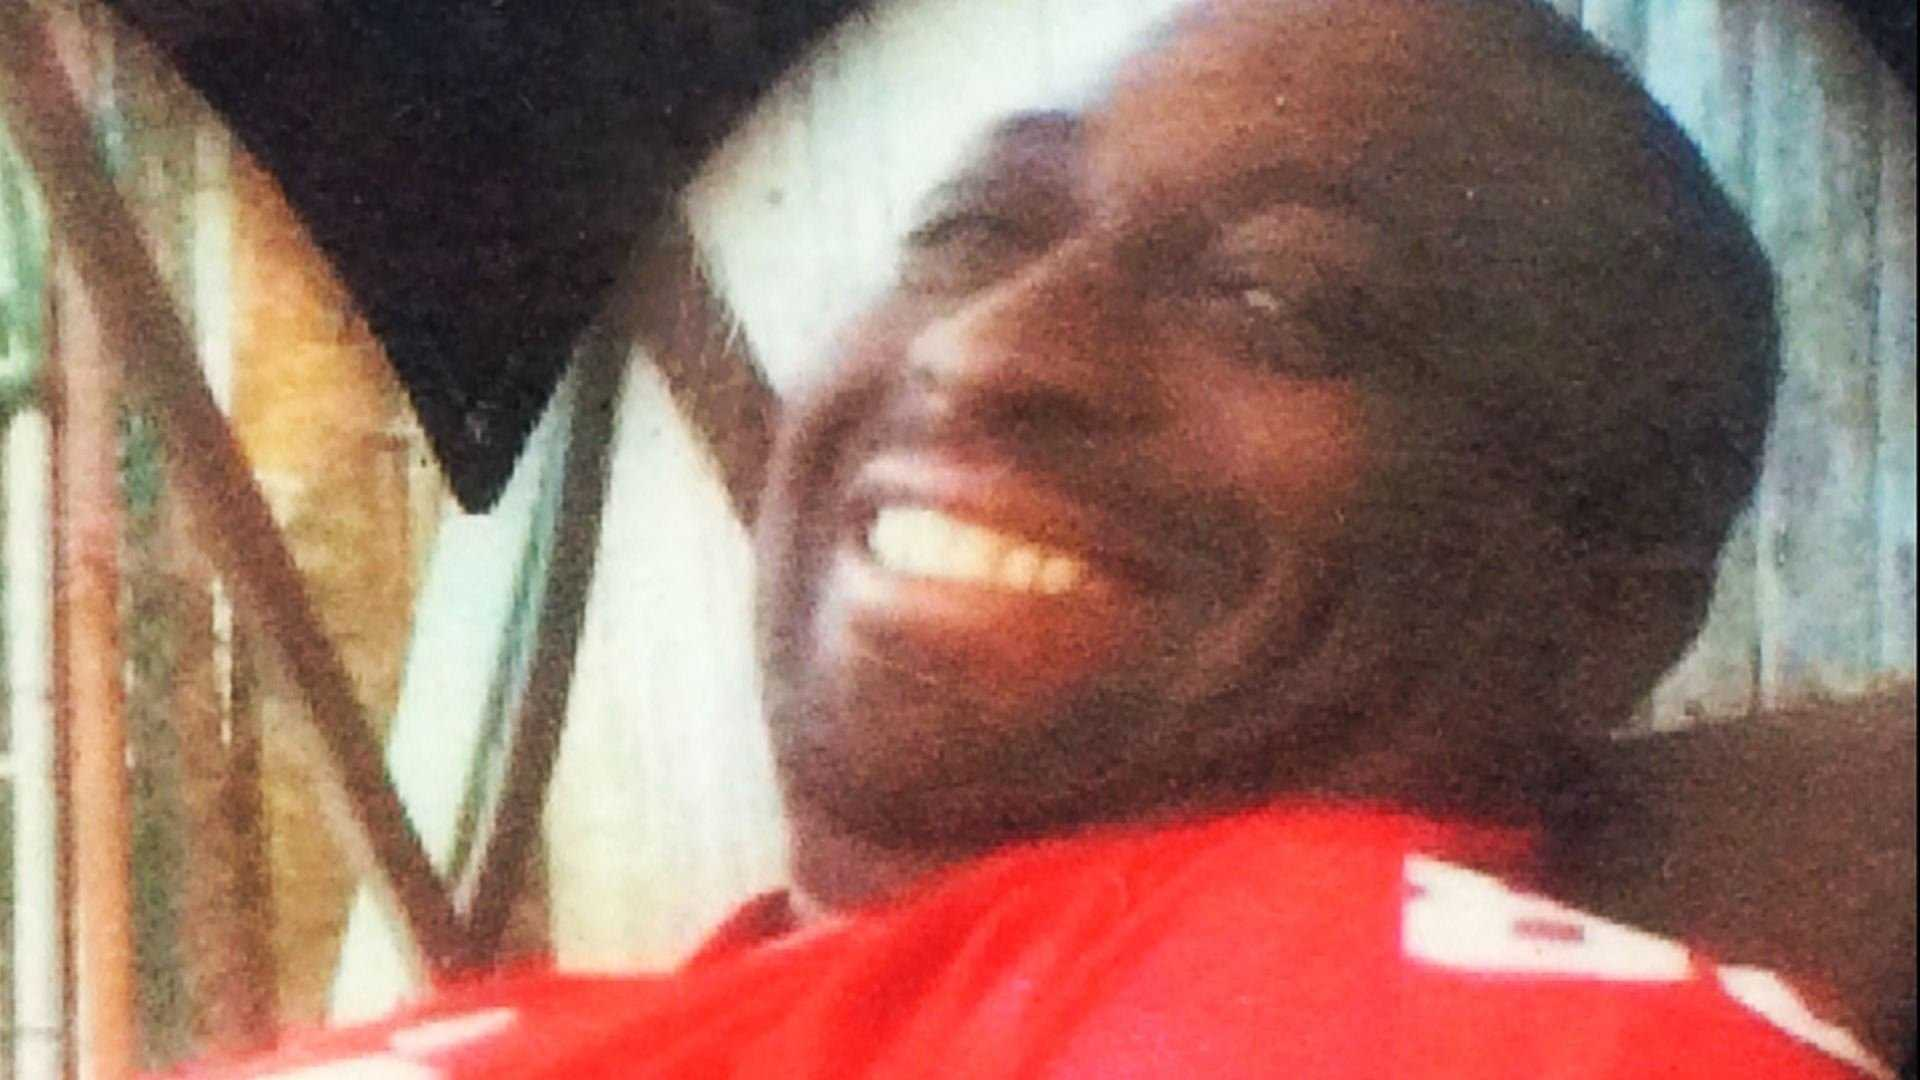 Eric Garner died in 2014 after police attempted to arrest the 43-year-old father of six for allegedly selling cigarettes illegally in Staten Island.